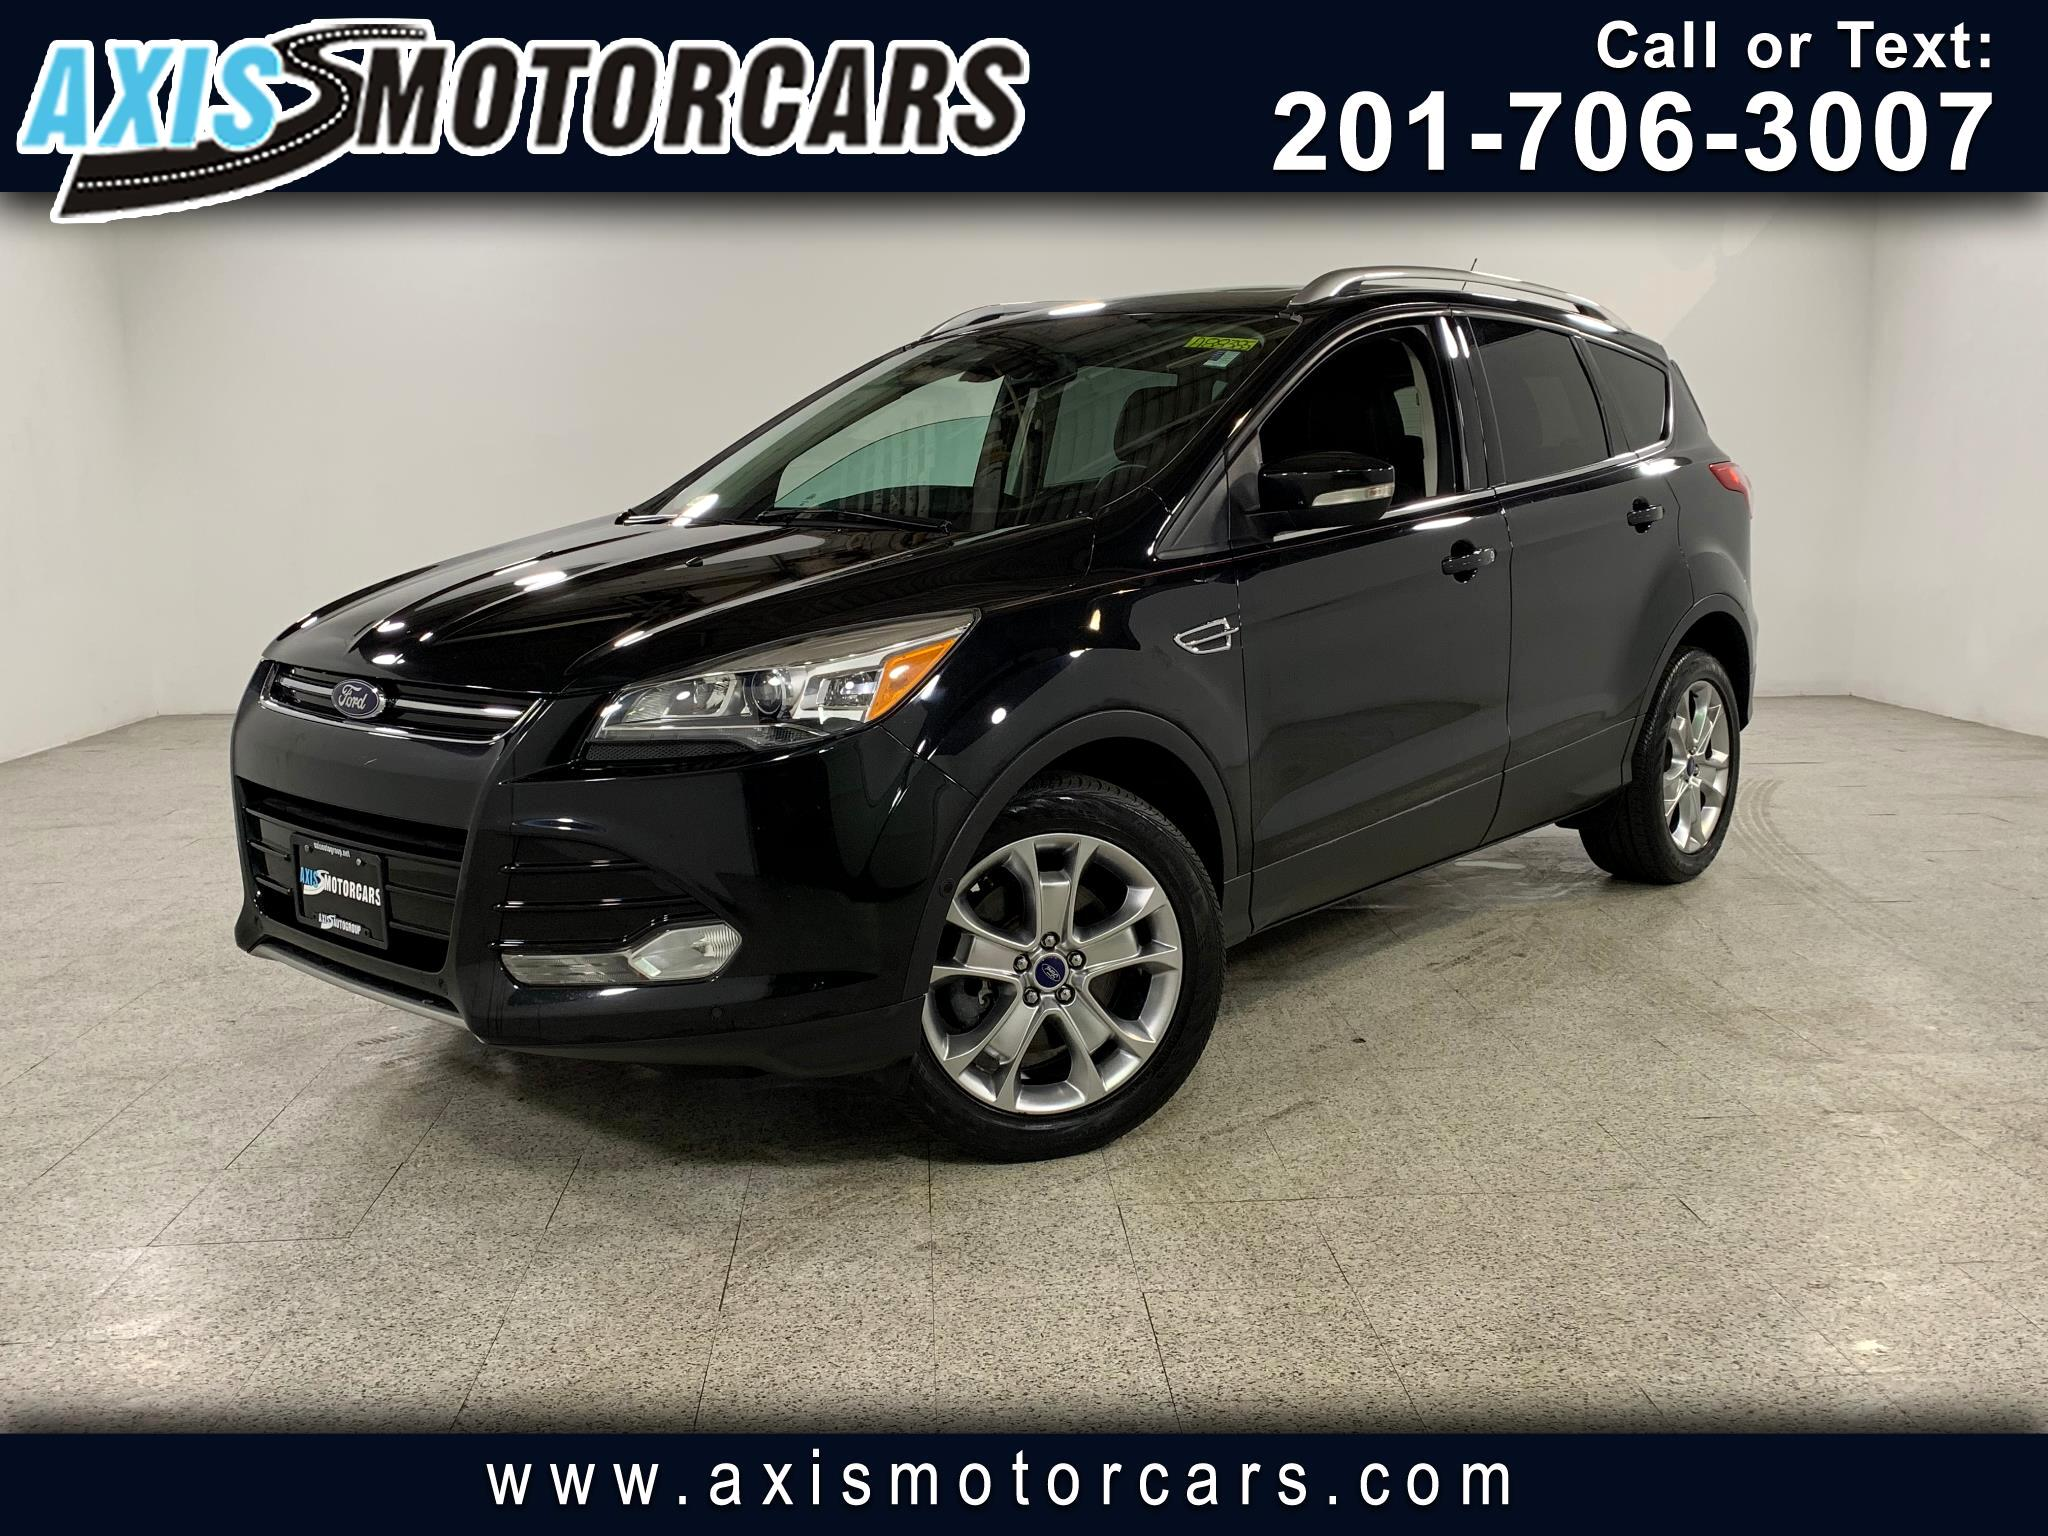 2014 Ford Escape Titanium w/Panoramic Roof Navigation Bakup Camera